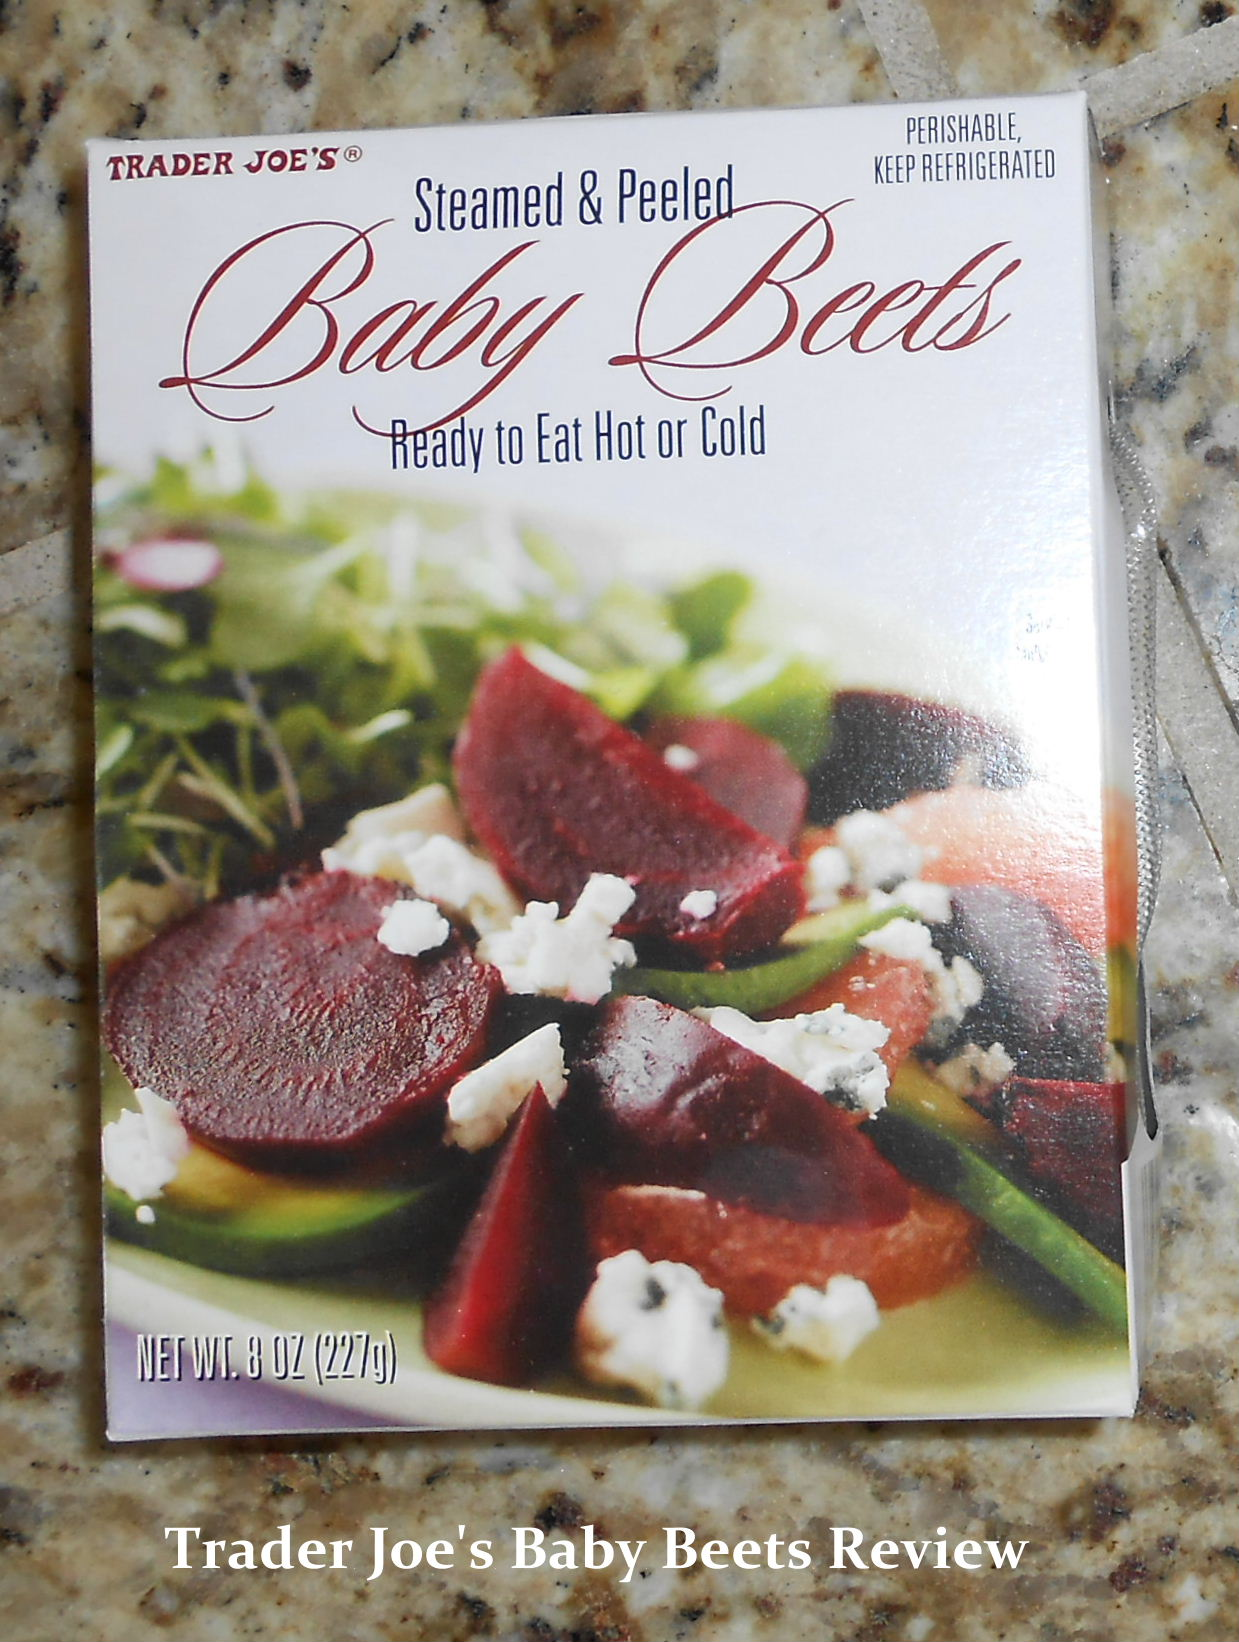 Convenient Baby Beets Review